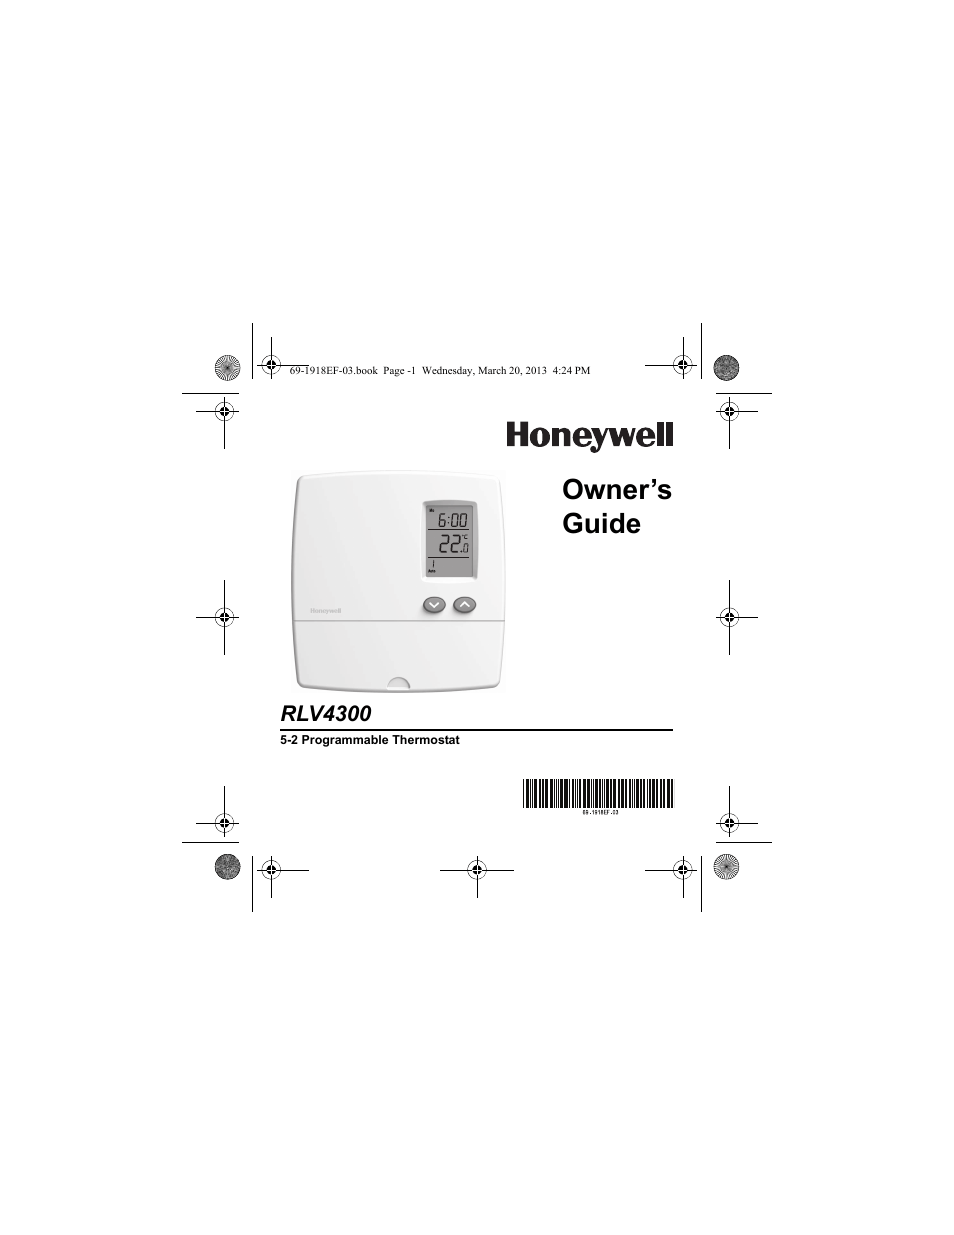 Honeywell 5-2 PROGRAMAMABLE THERMOSTAT RLV4300 Manuel d